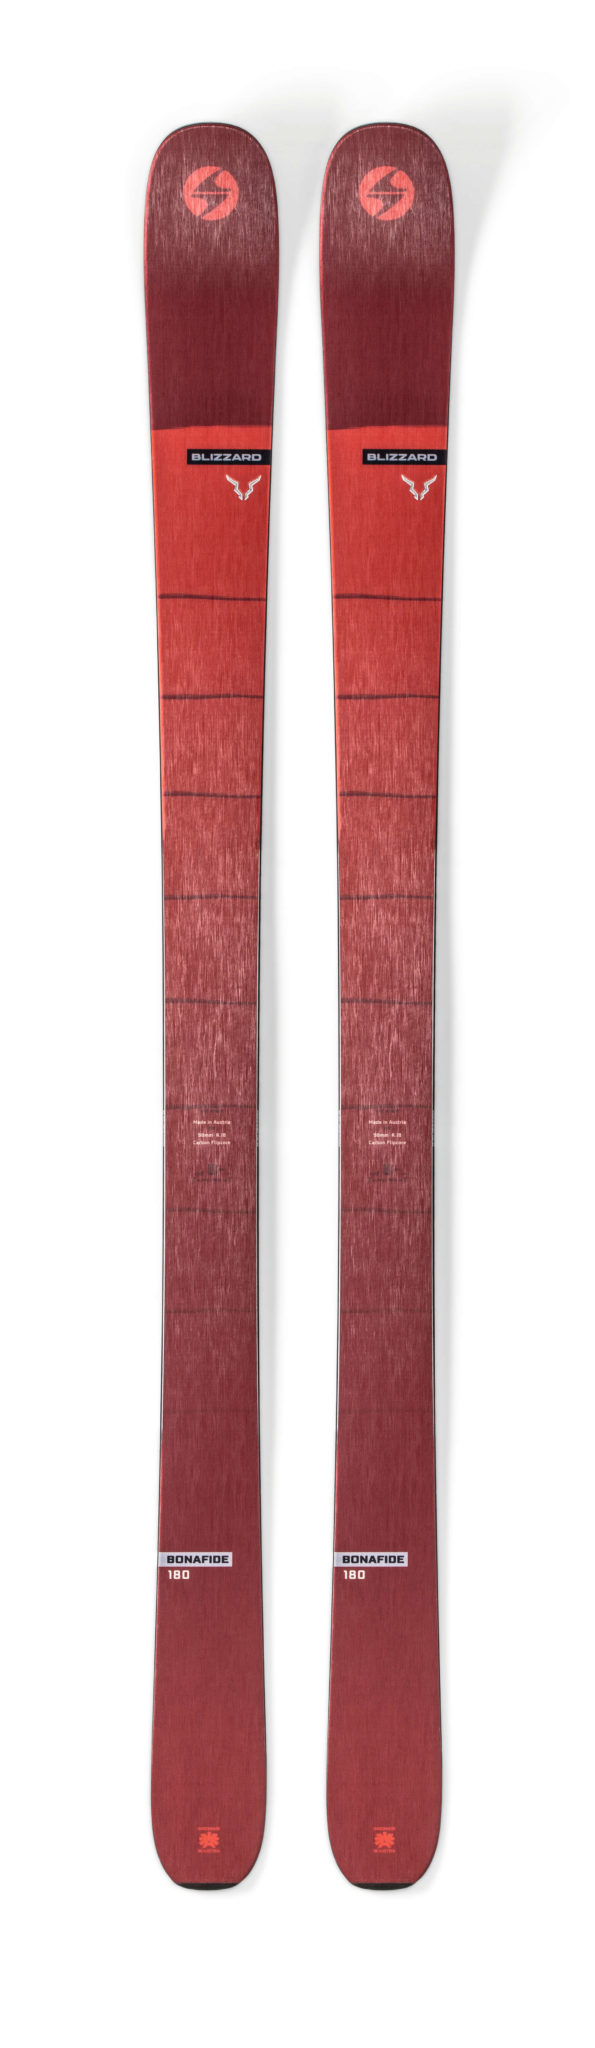 Blizzard Bonafide 98 Skis (Flat) 2019-20 at Northern Ski Works